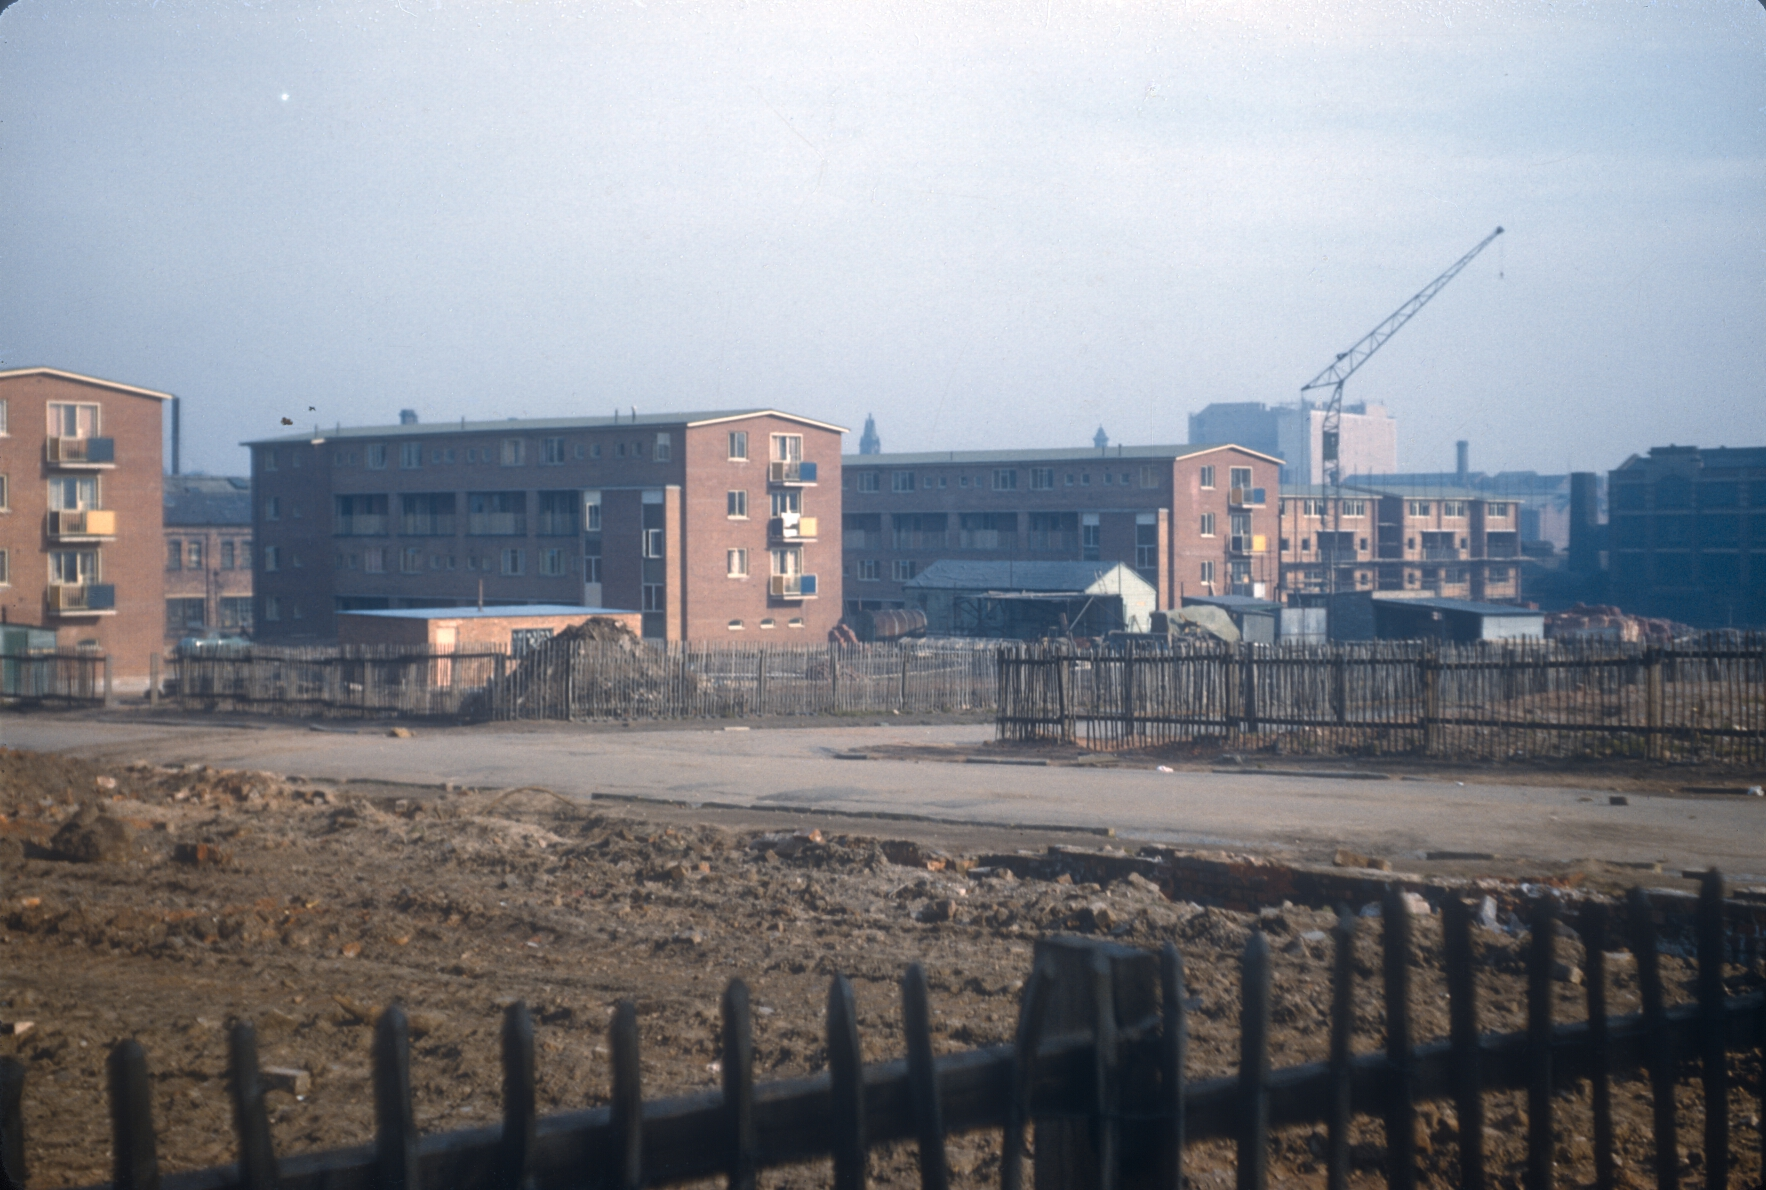 Ladywood redevelopment, maisonettes in Browning St. 2nd March 1957